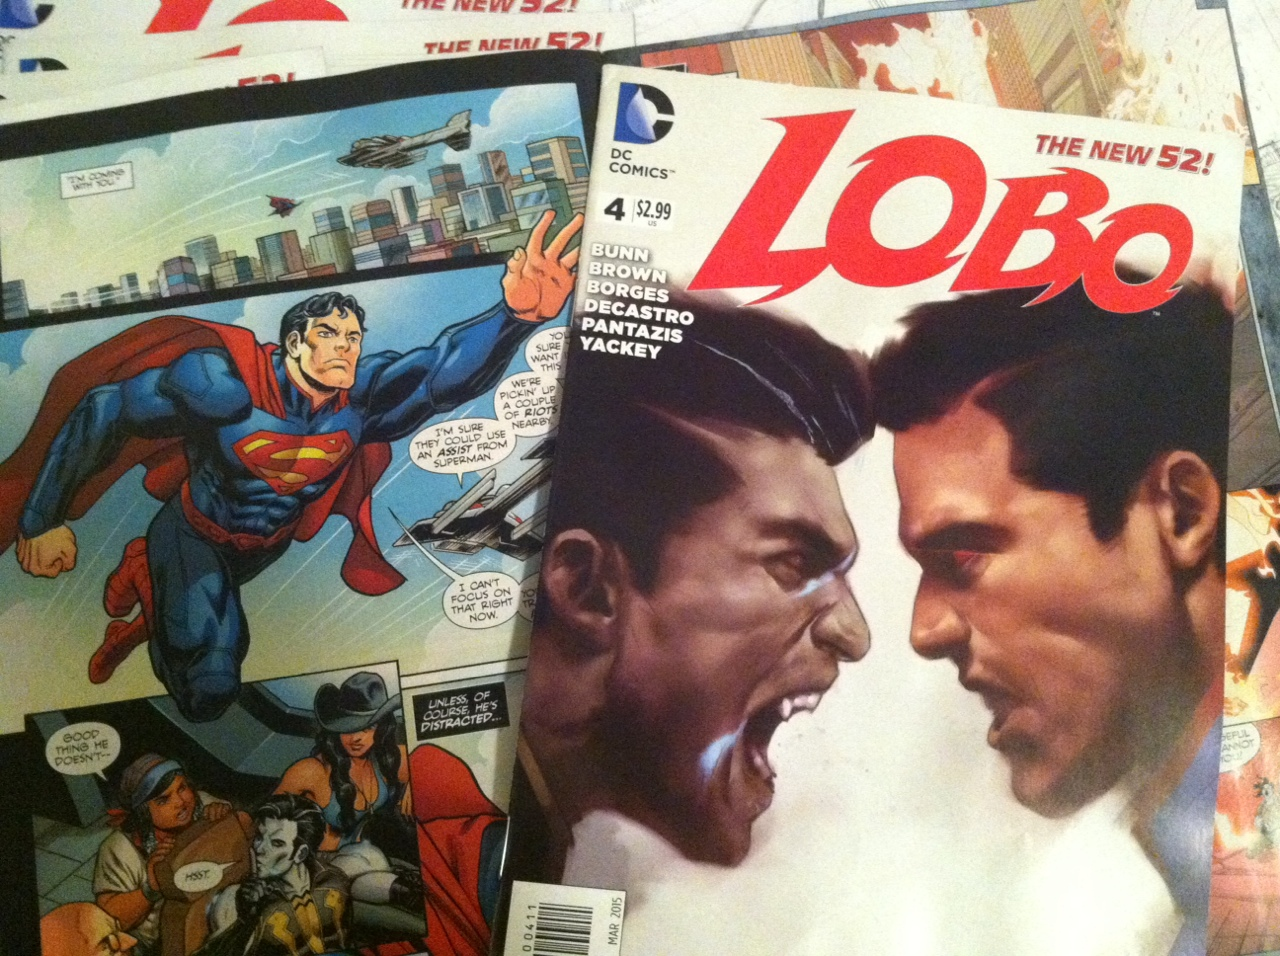 Got some Lobo #4 comps in the mail– Merry Christmas to me!